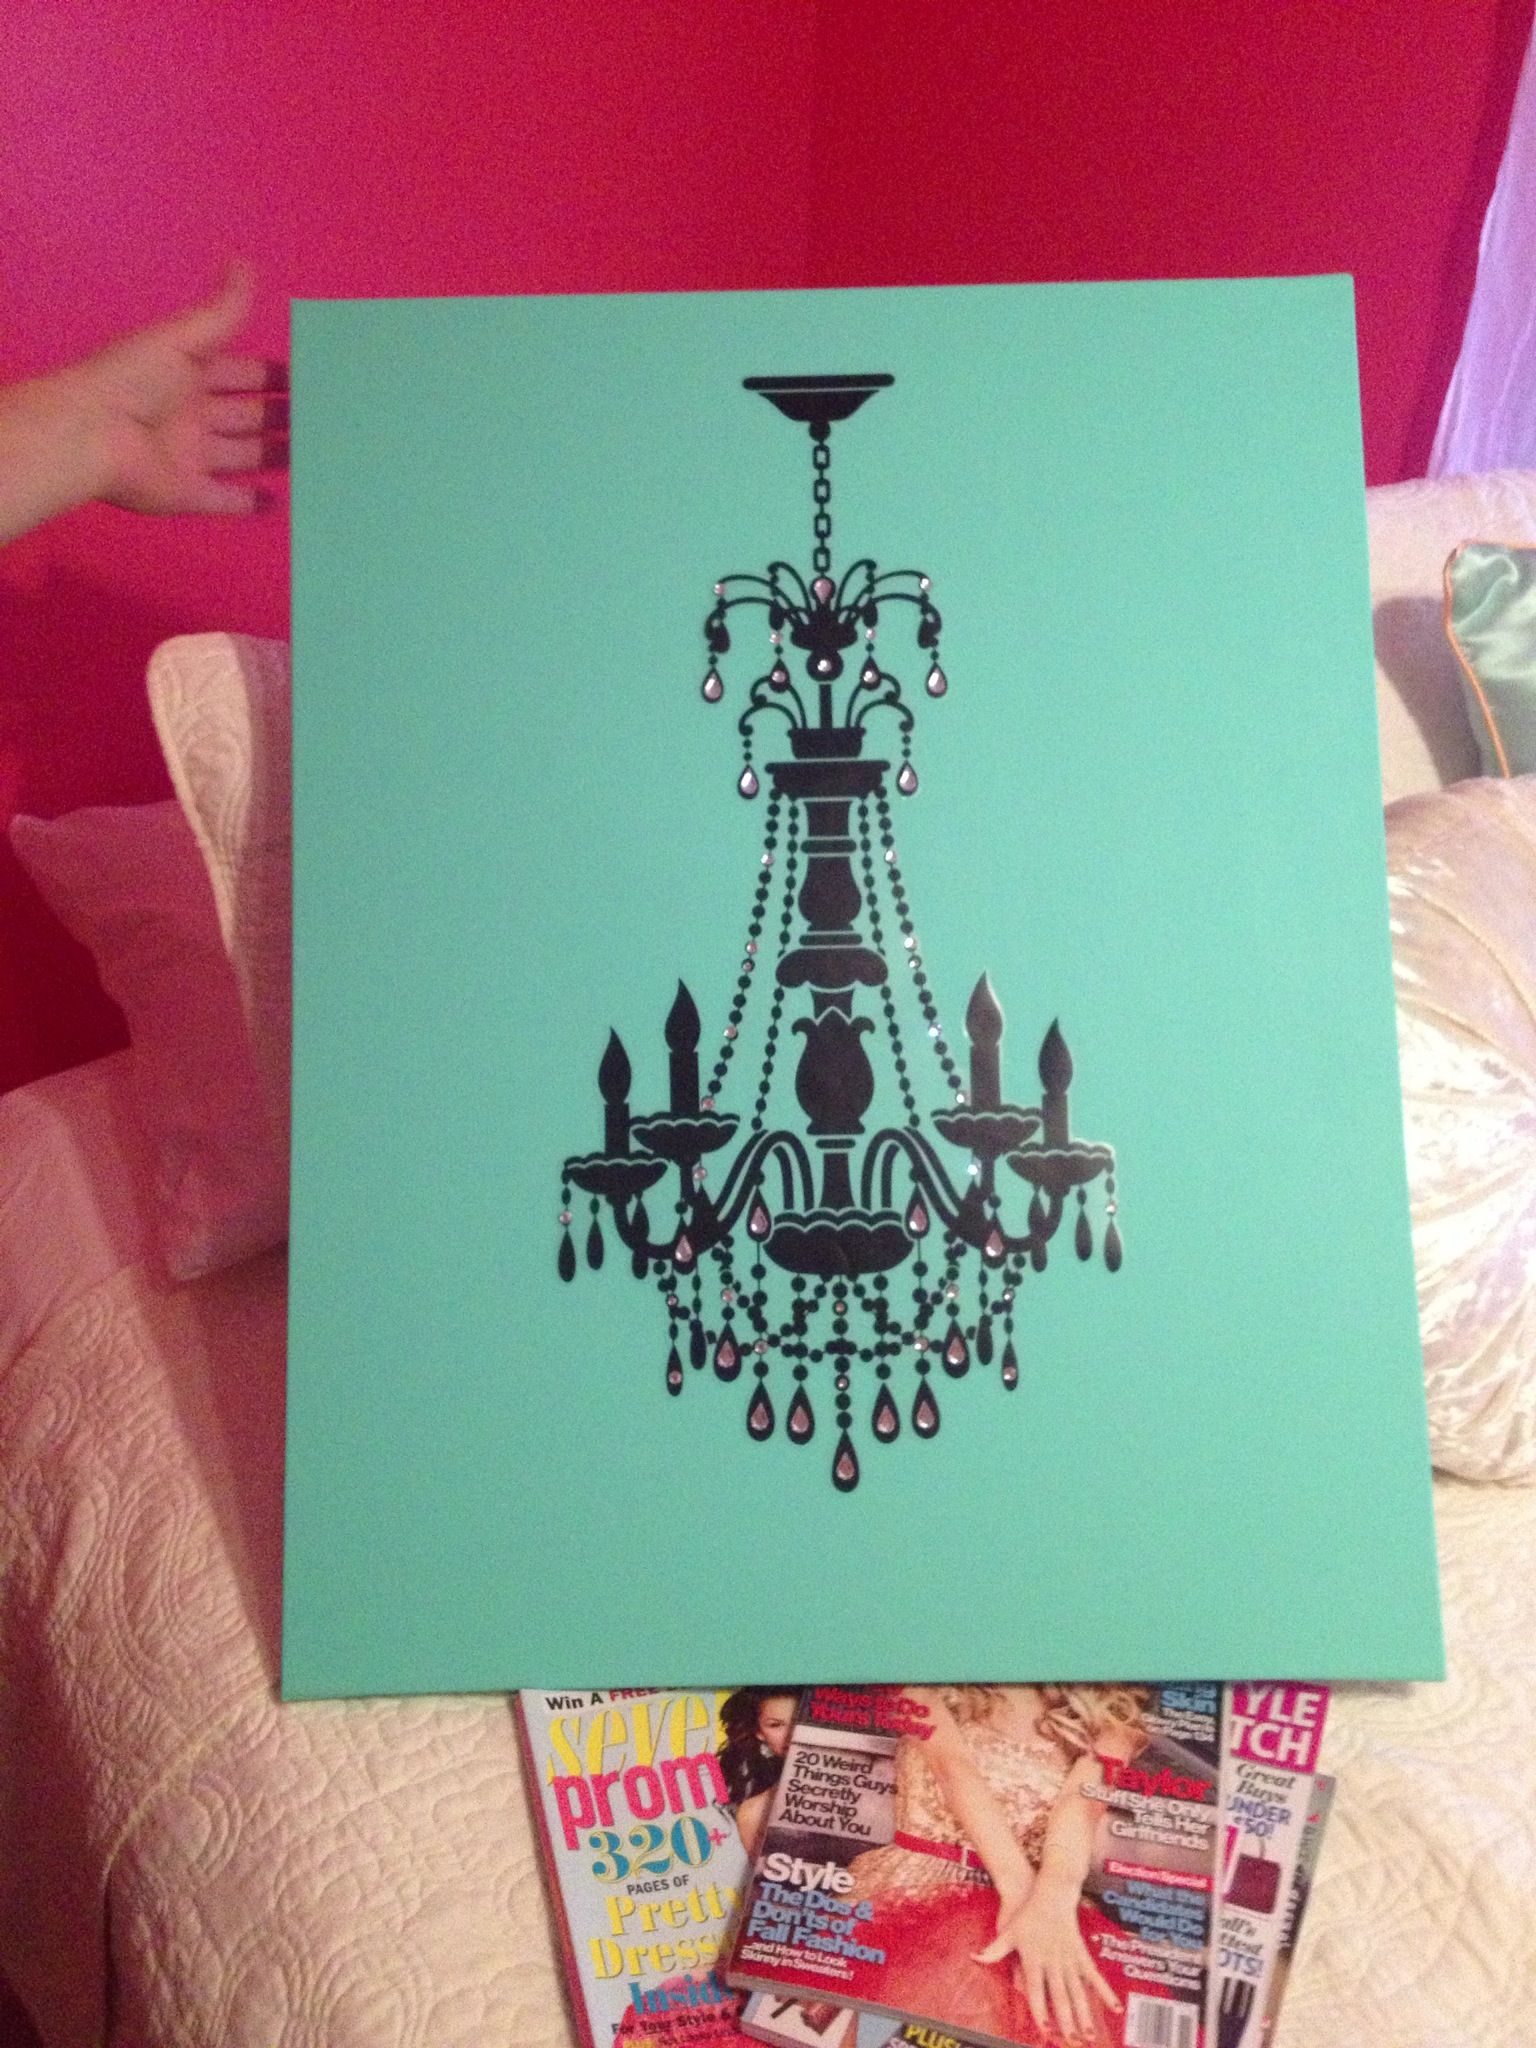 Chloeus diy chandelier wall art on painted turquoise canvas art